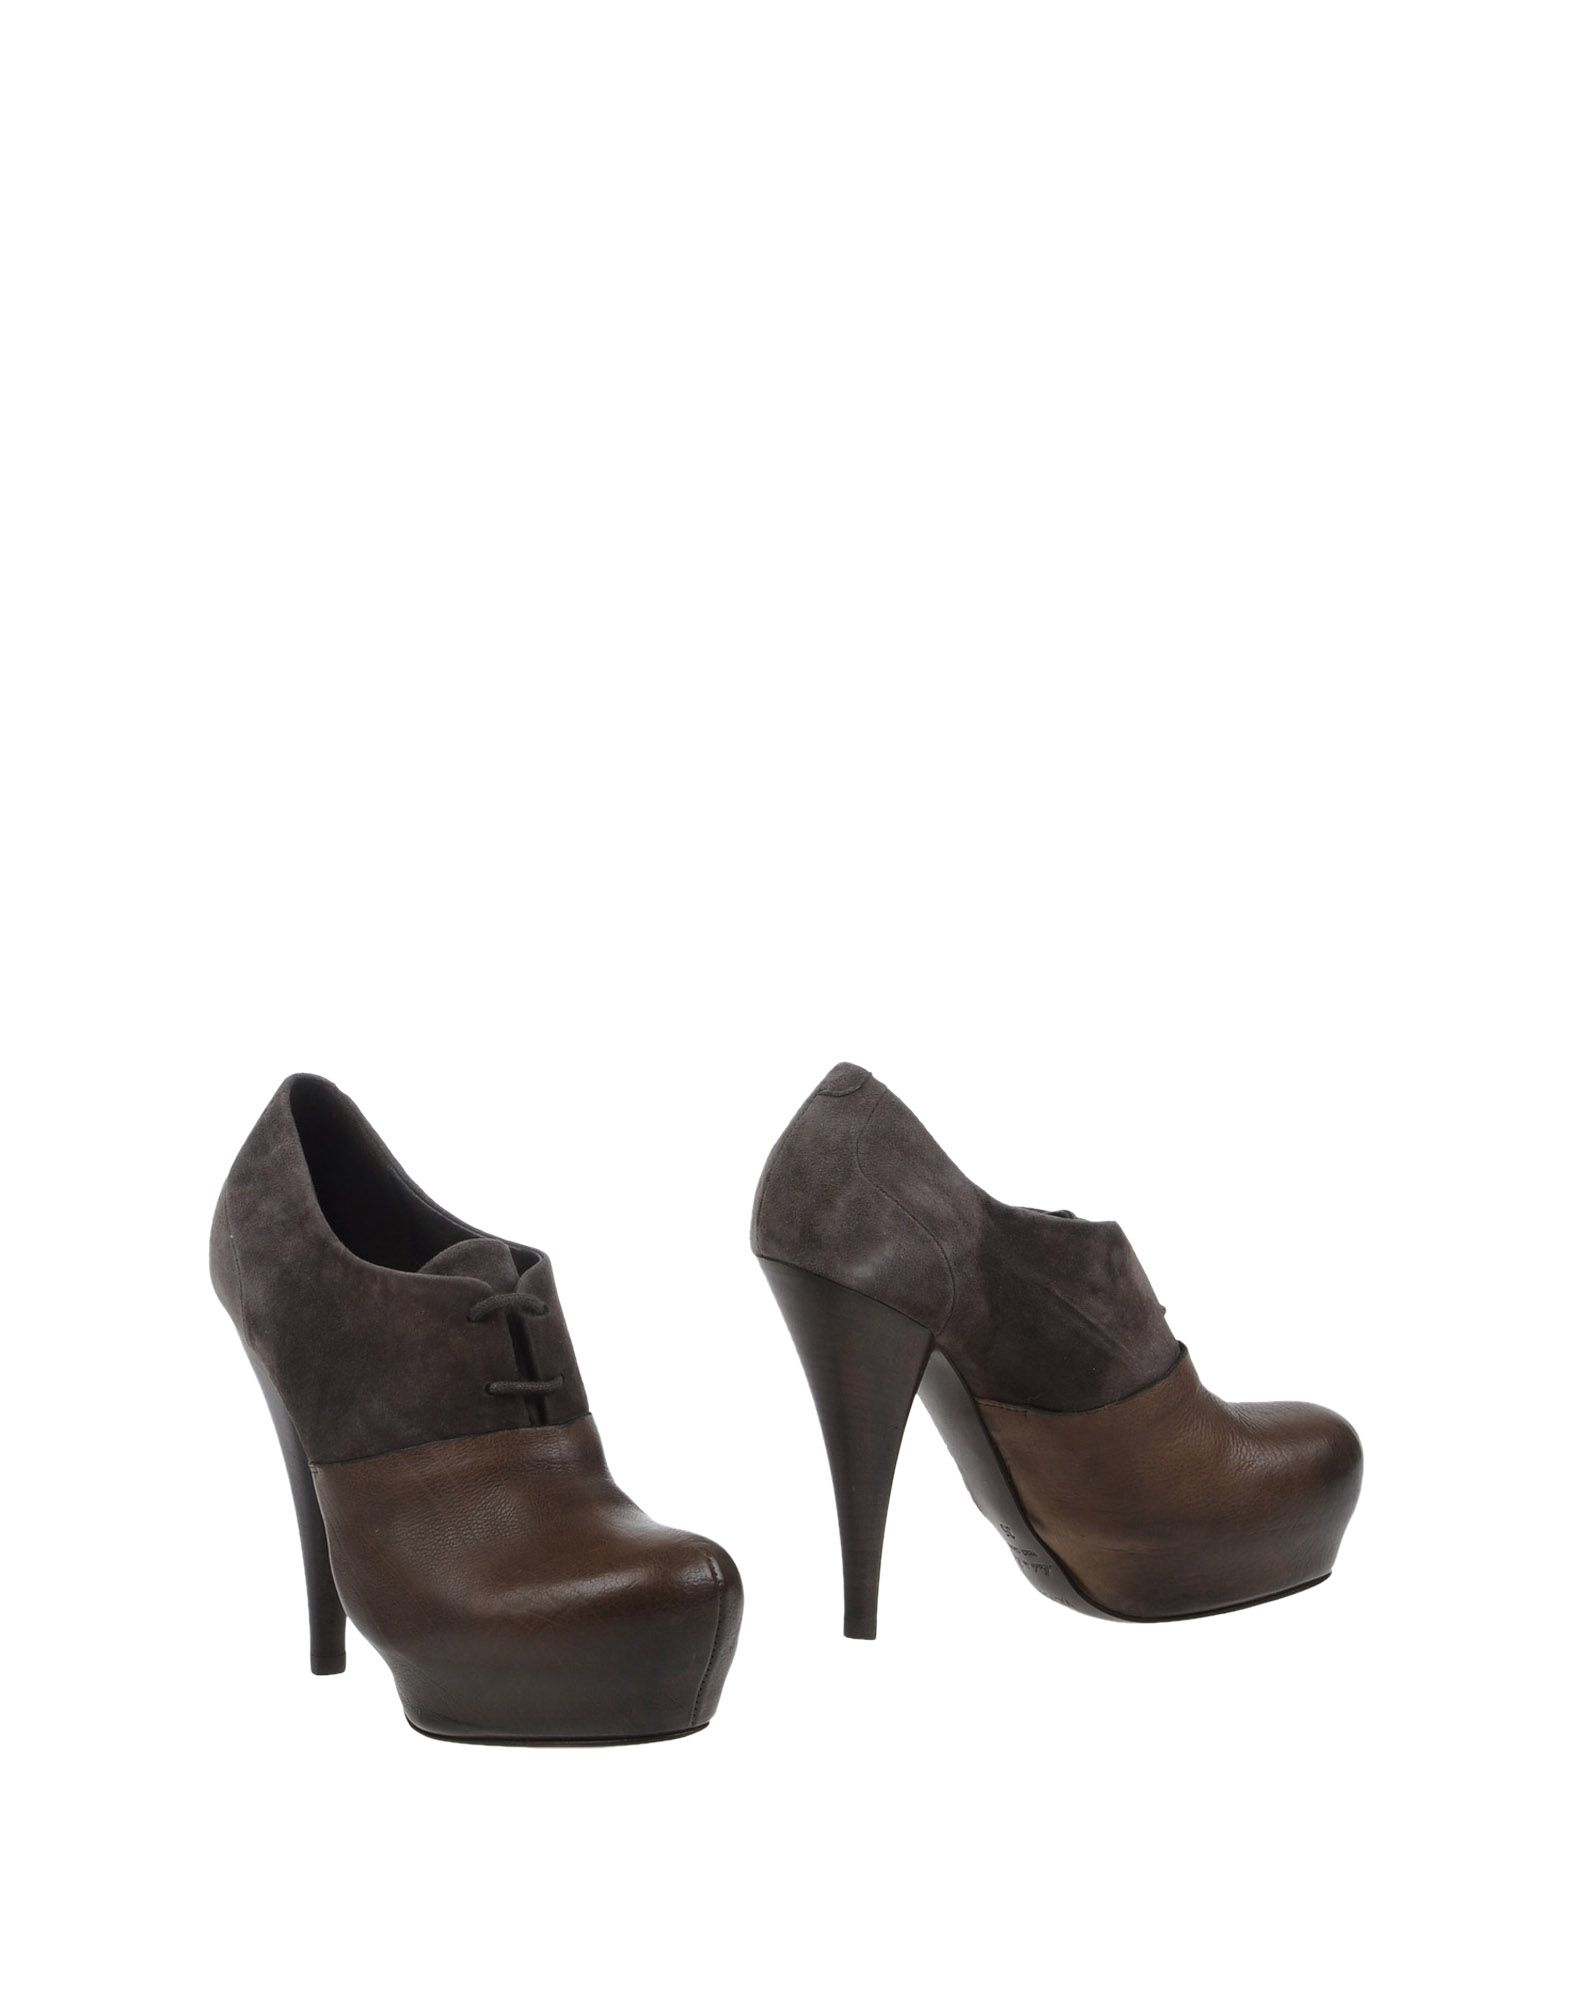 vic mati shoe boots in brown lyst. Black Bedroom Furniture Sets. Home Design Ideas